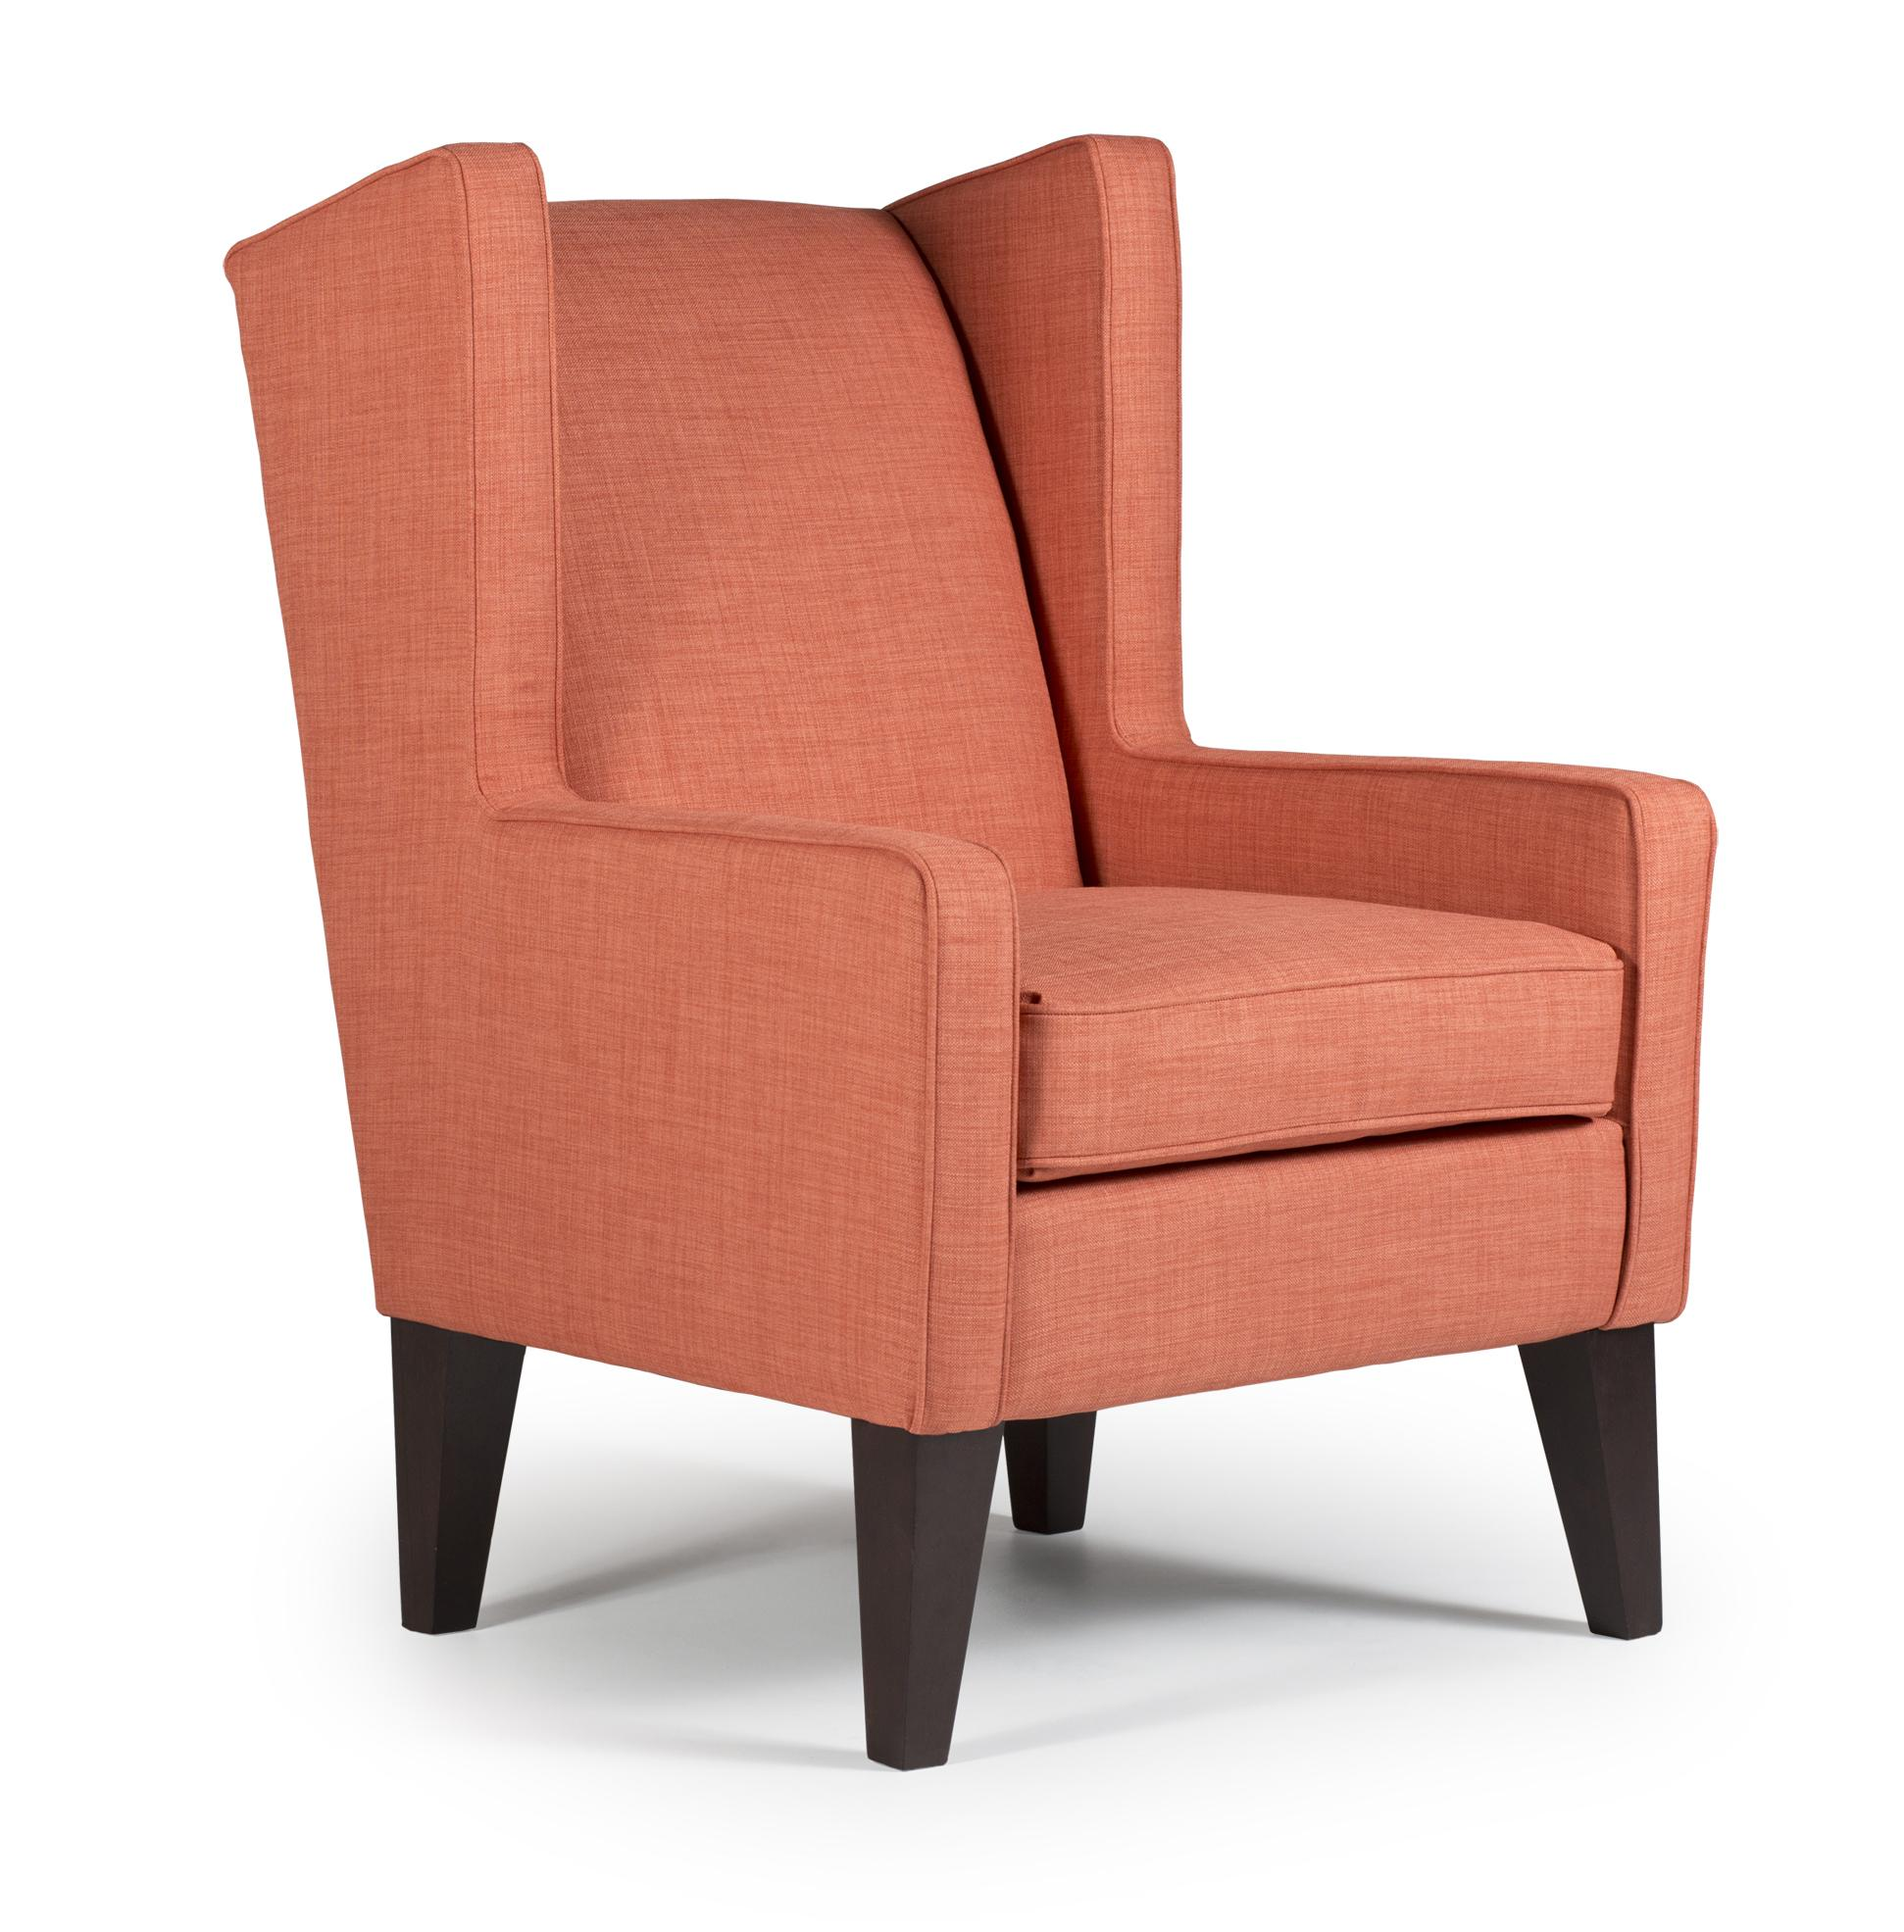 Karla modern wing chair by best home furnishings wolf for Best furniture for home